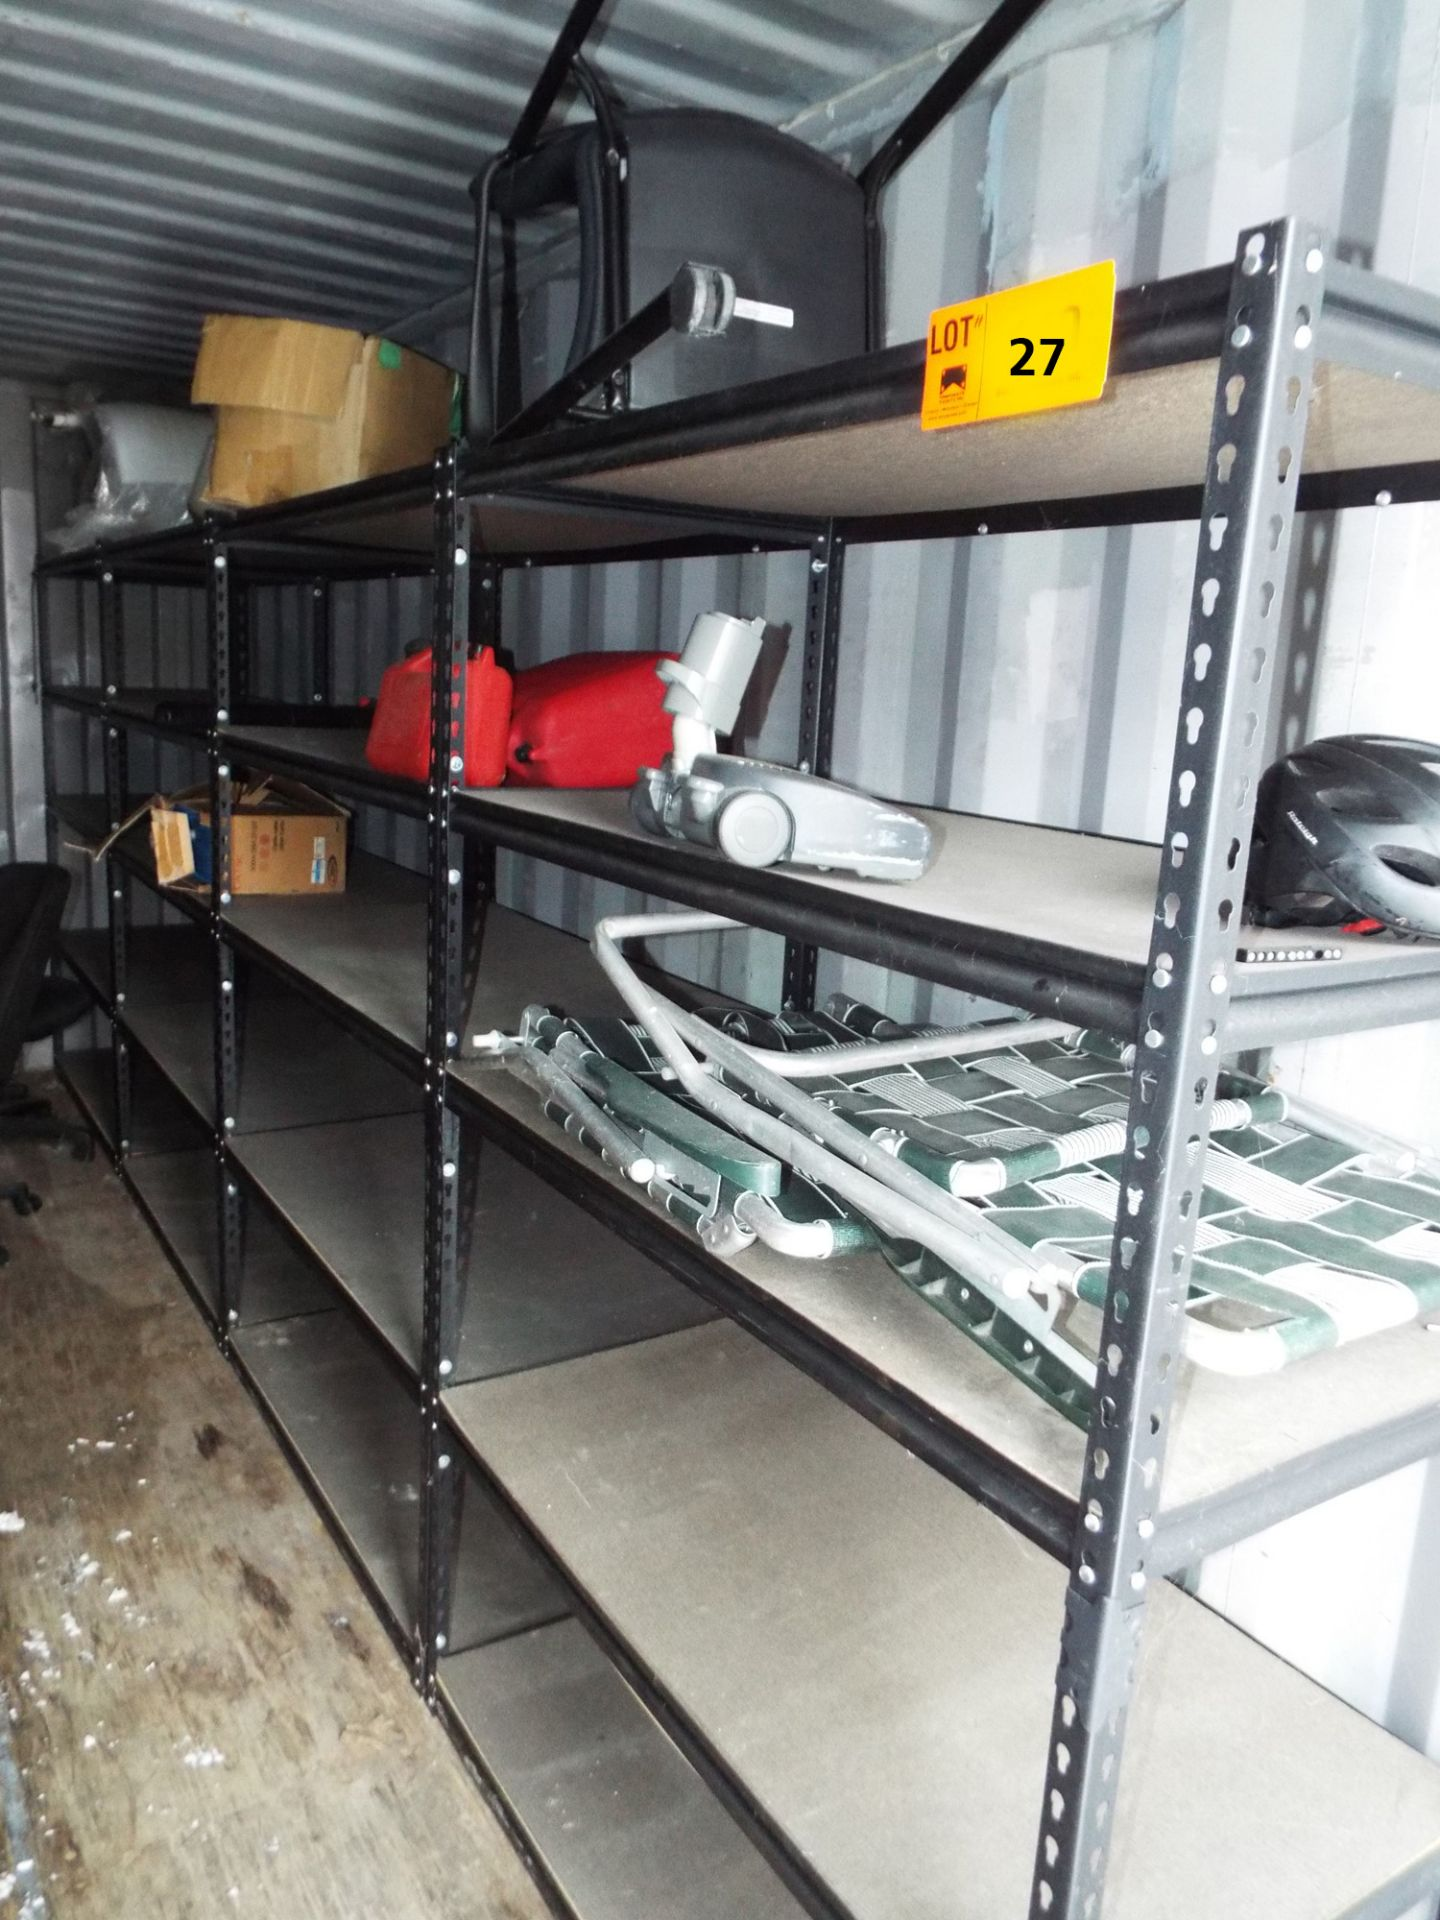 """Lot 27 - LOT/ (4) LIGHT DUTY METAL SHELF UNITS 48.5""""X24.5""""X72""""H (NO CONTENTS) (STORED IN SEA CONTAINER)"""